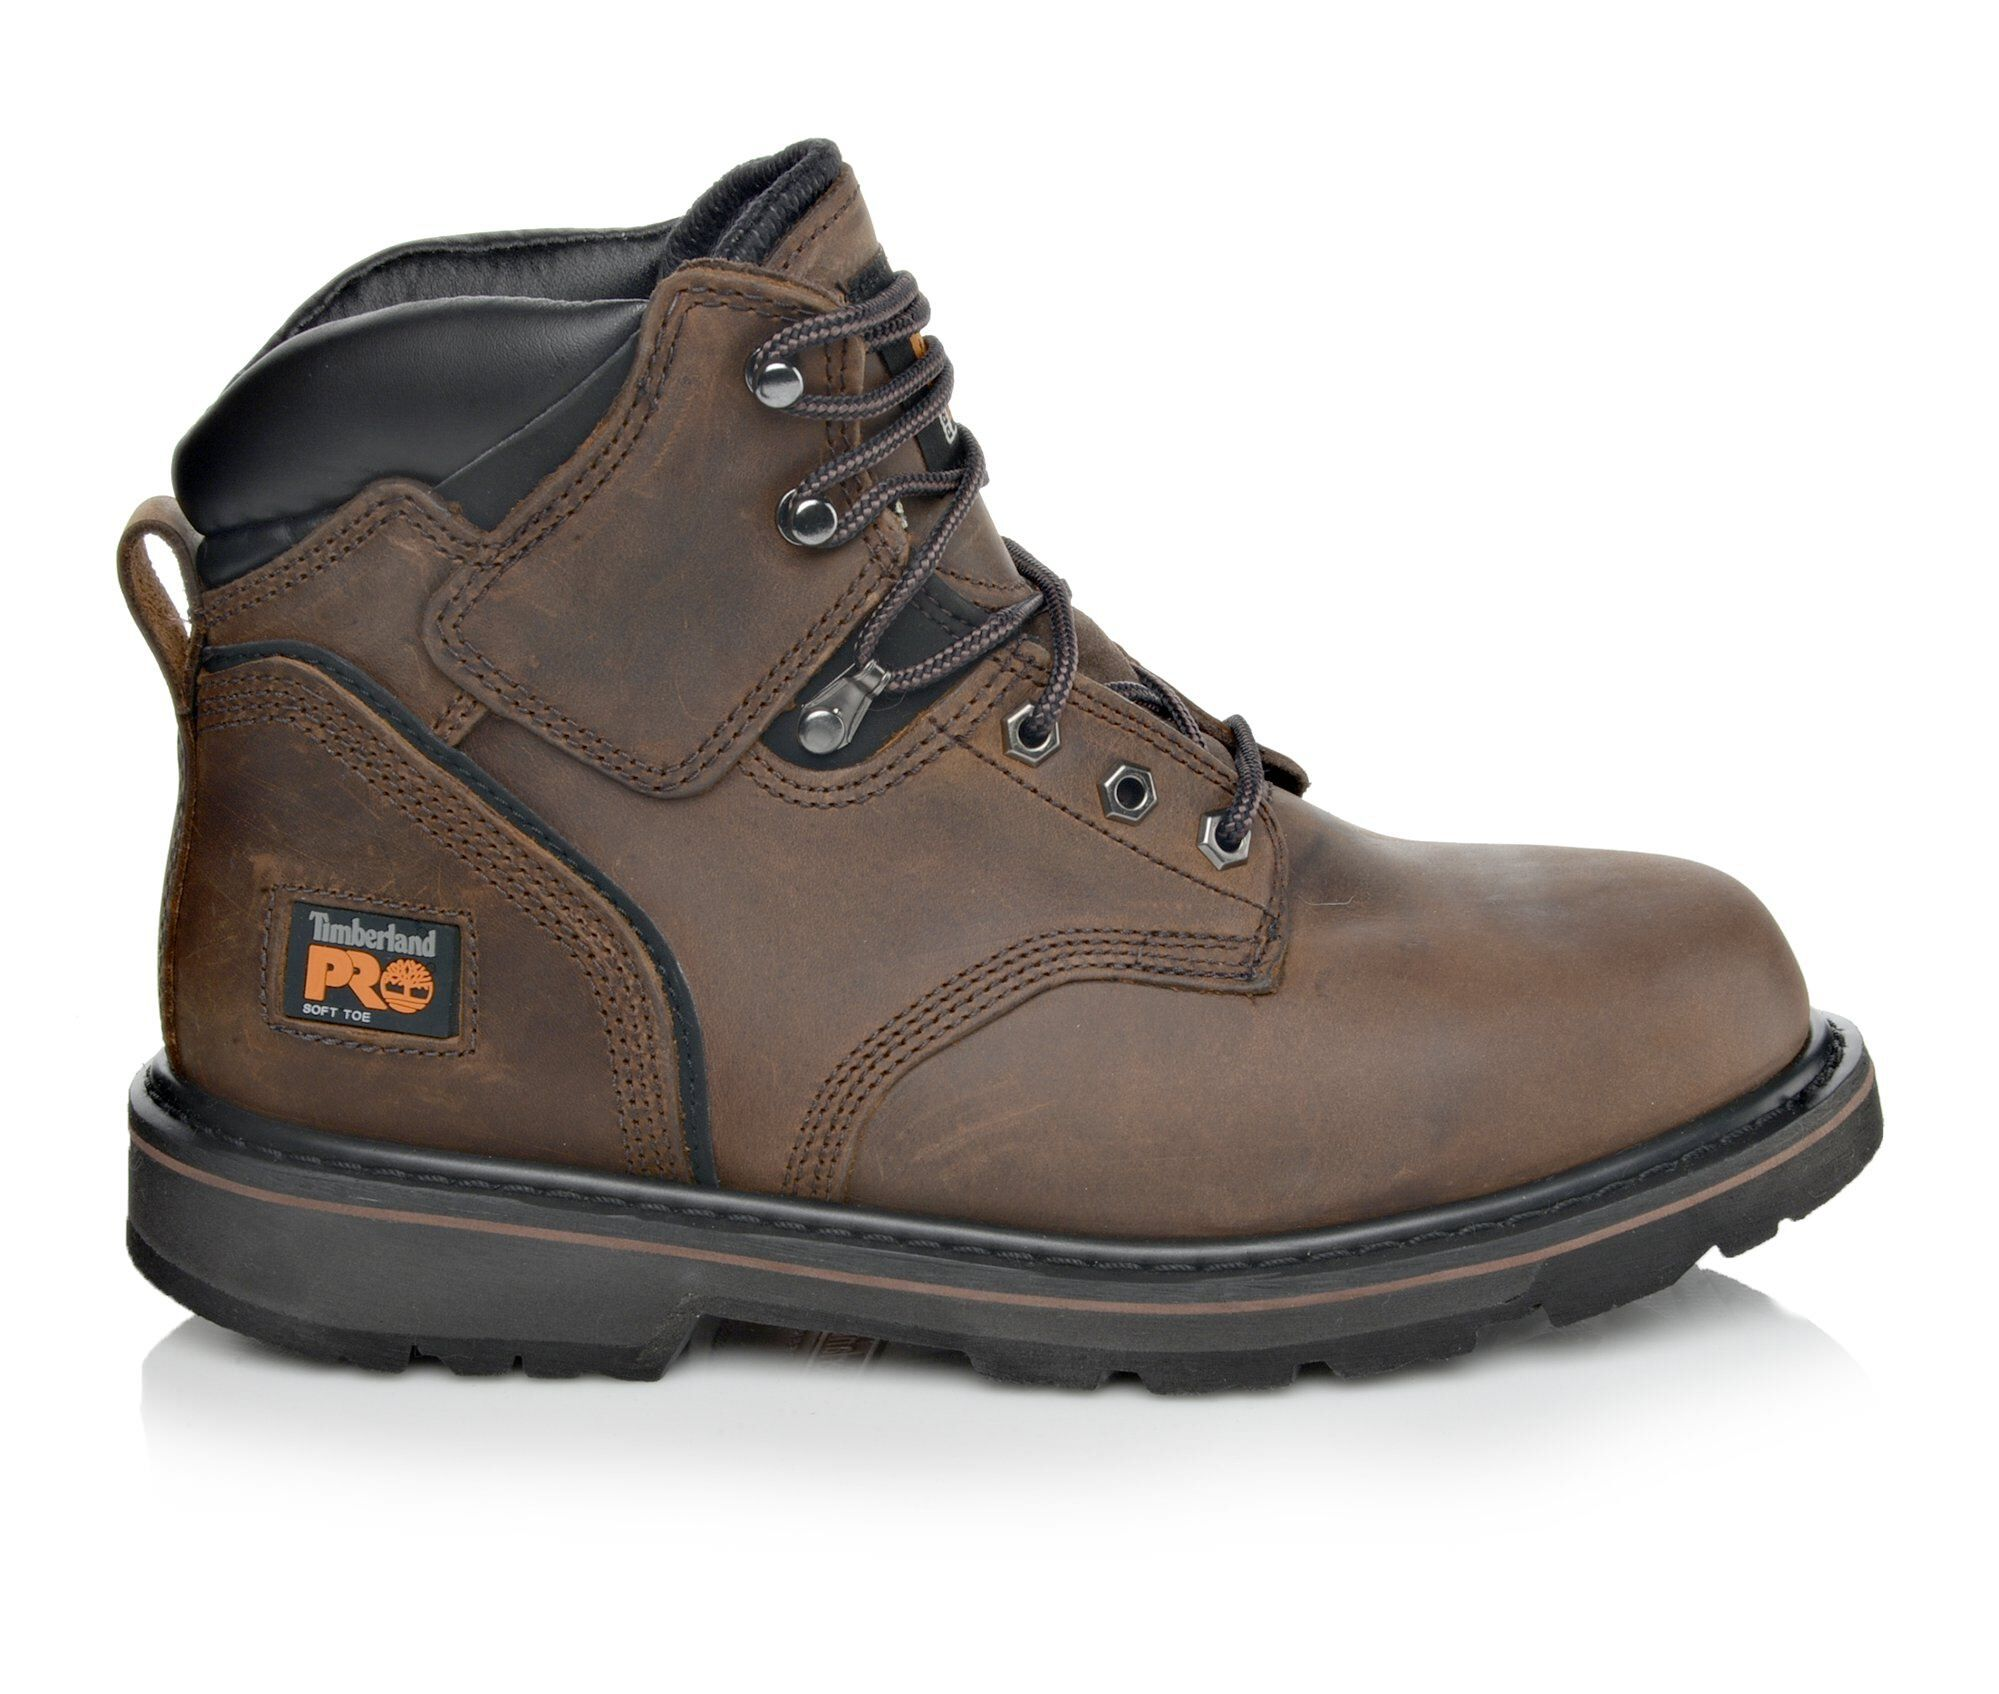 Men's Timberland Pro Pit Boss 6 Inch 33046 Soft Toe Work Boots cheap sale free shipping cheap sale supply Lp06YRYjV